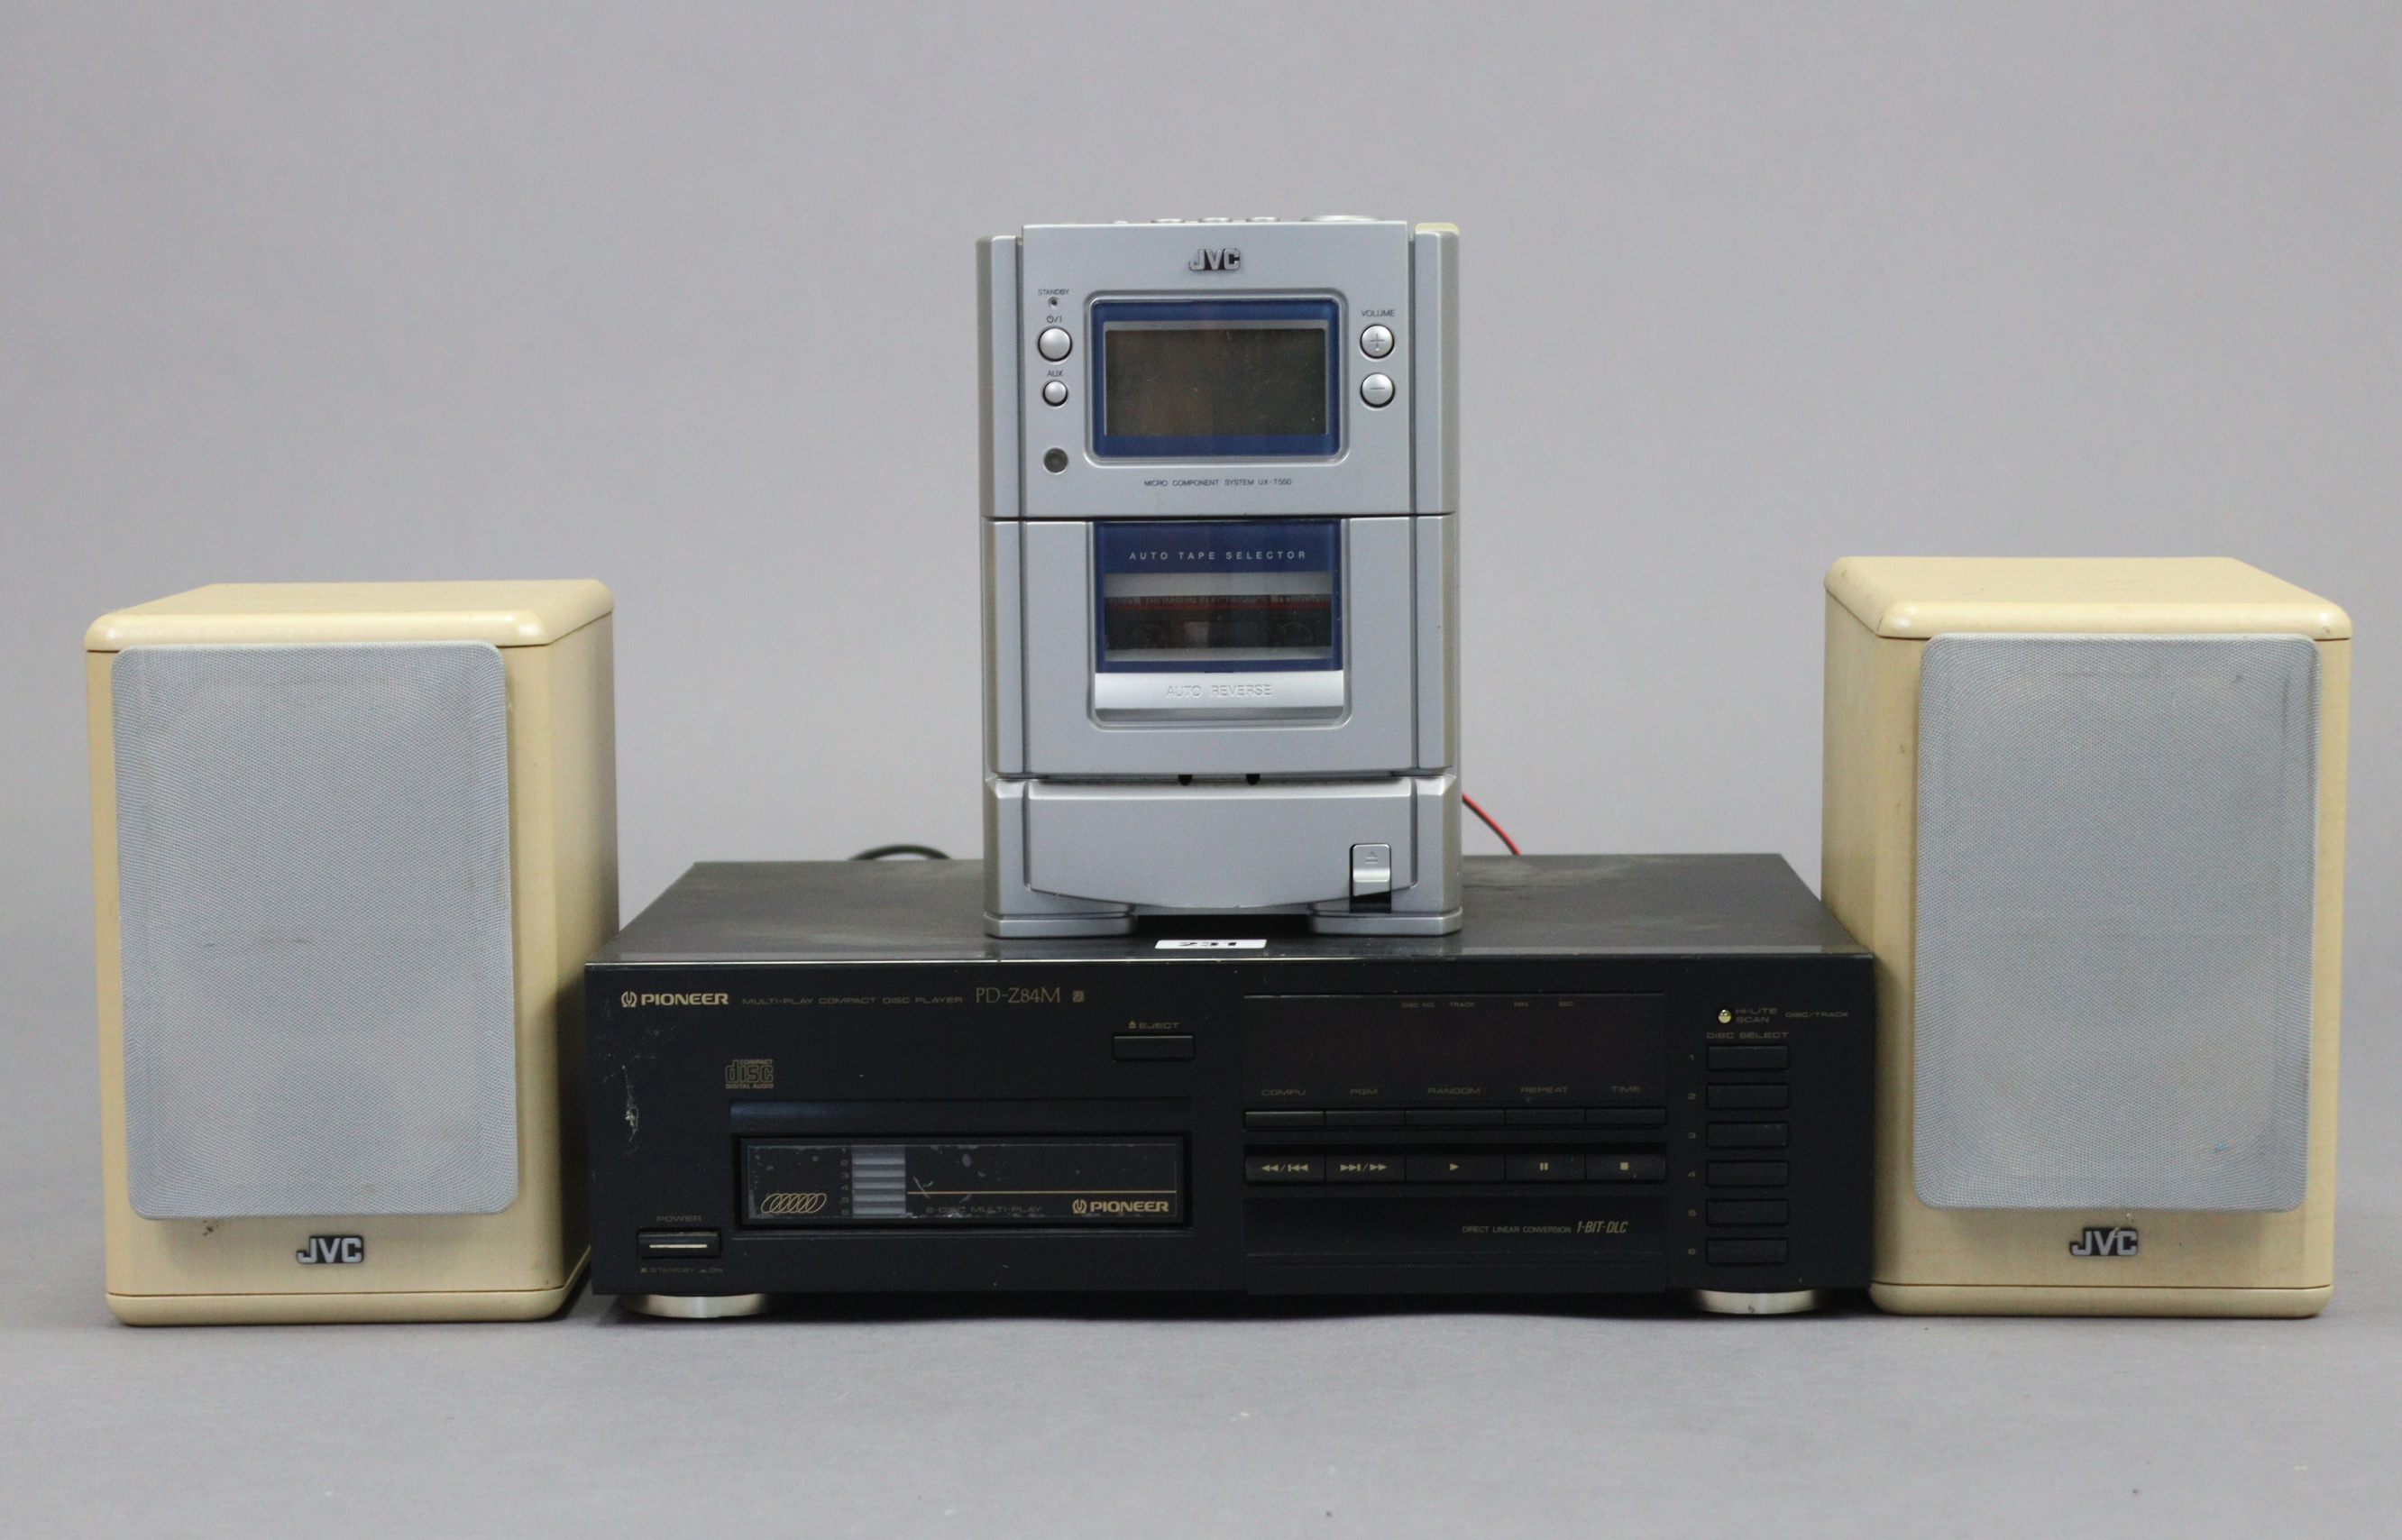 A Pioneer compact disc player (PD-Z84M); & a JVC micro component system.